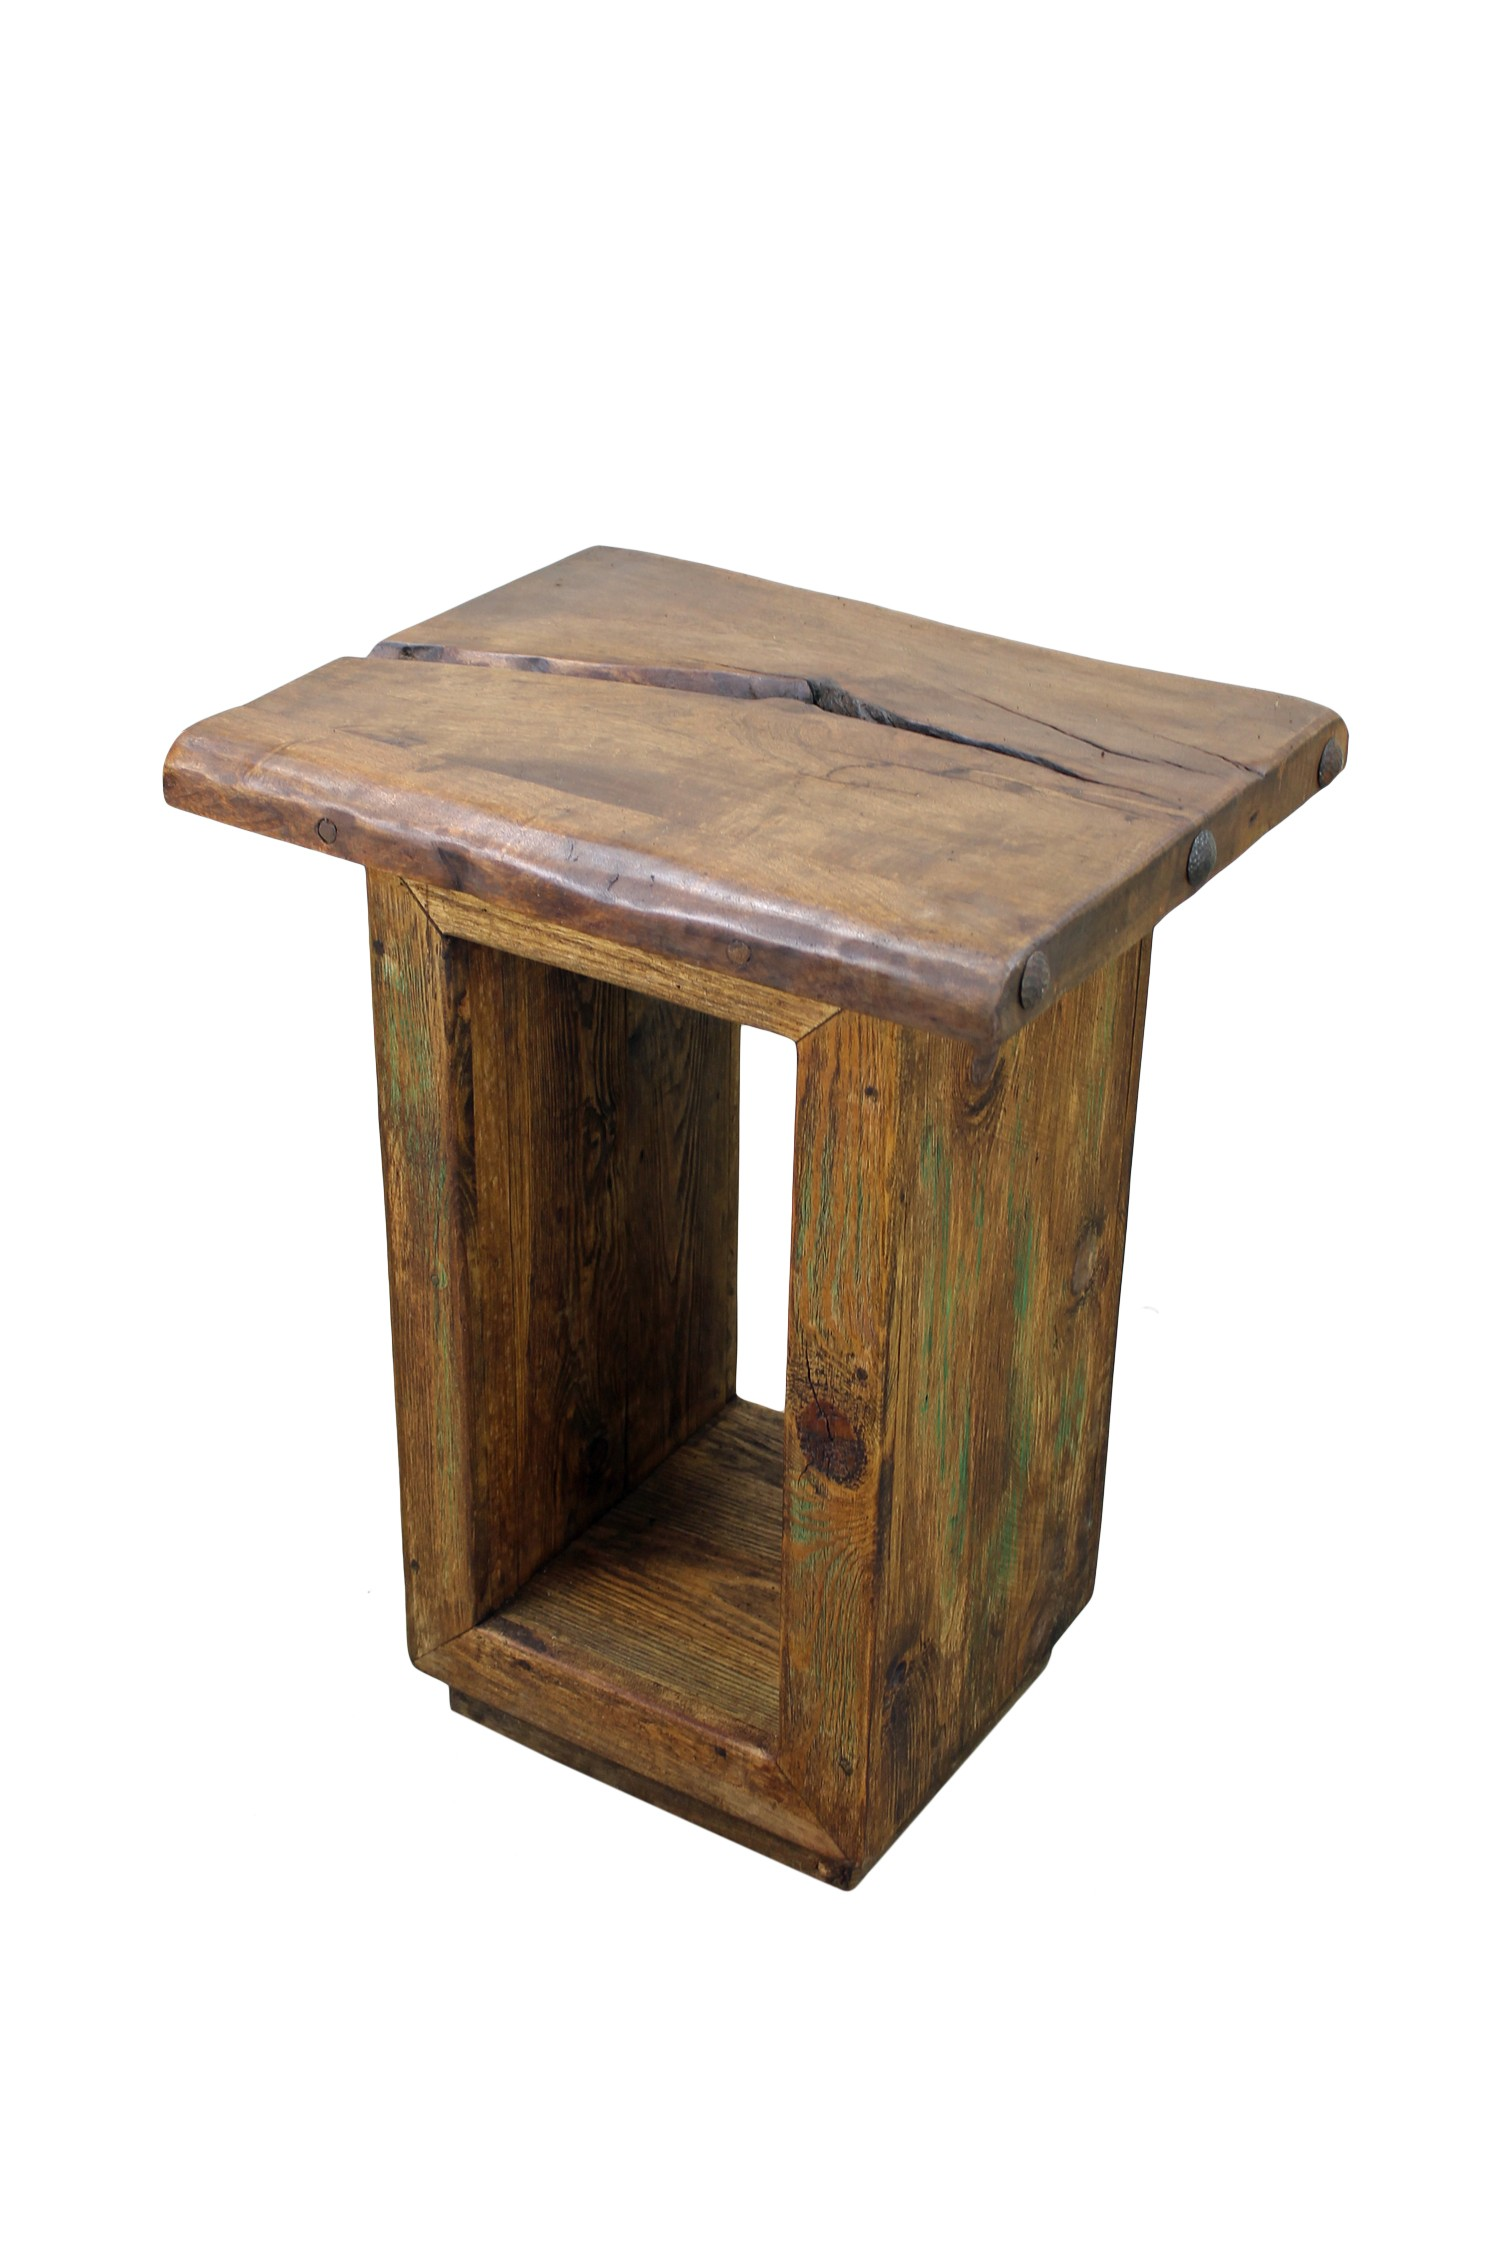 Wood Cube End Table Mesquite Wood Cube Side Table Mexican Home Decor Mexican